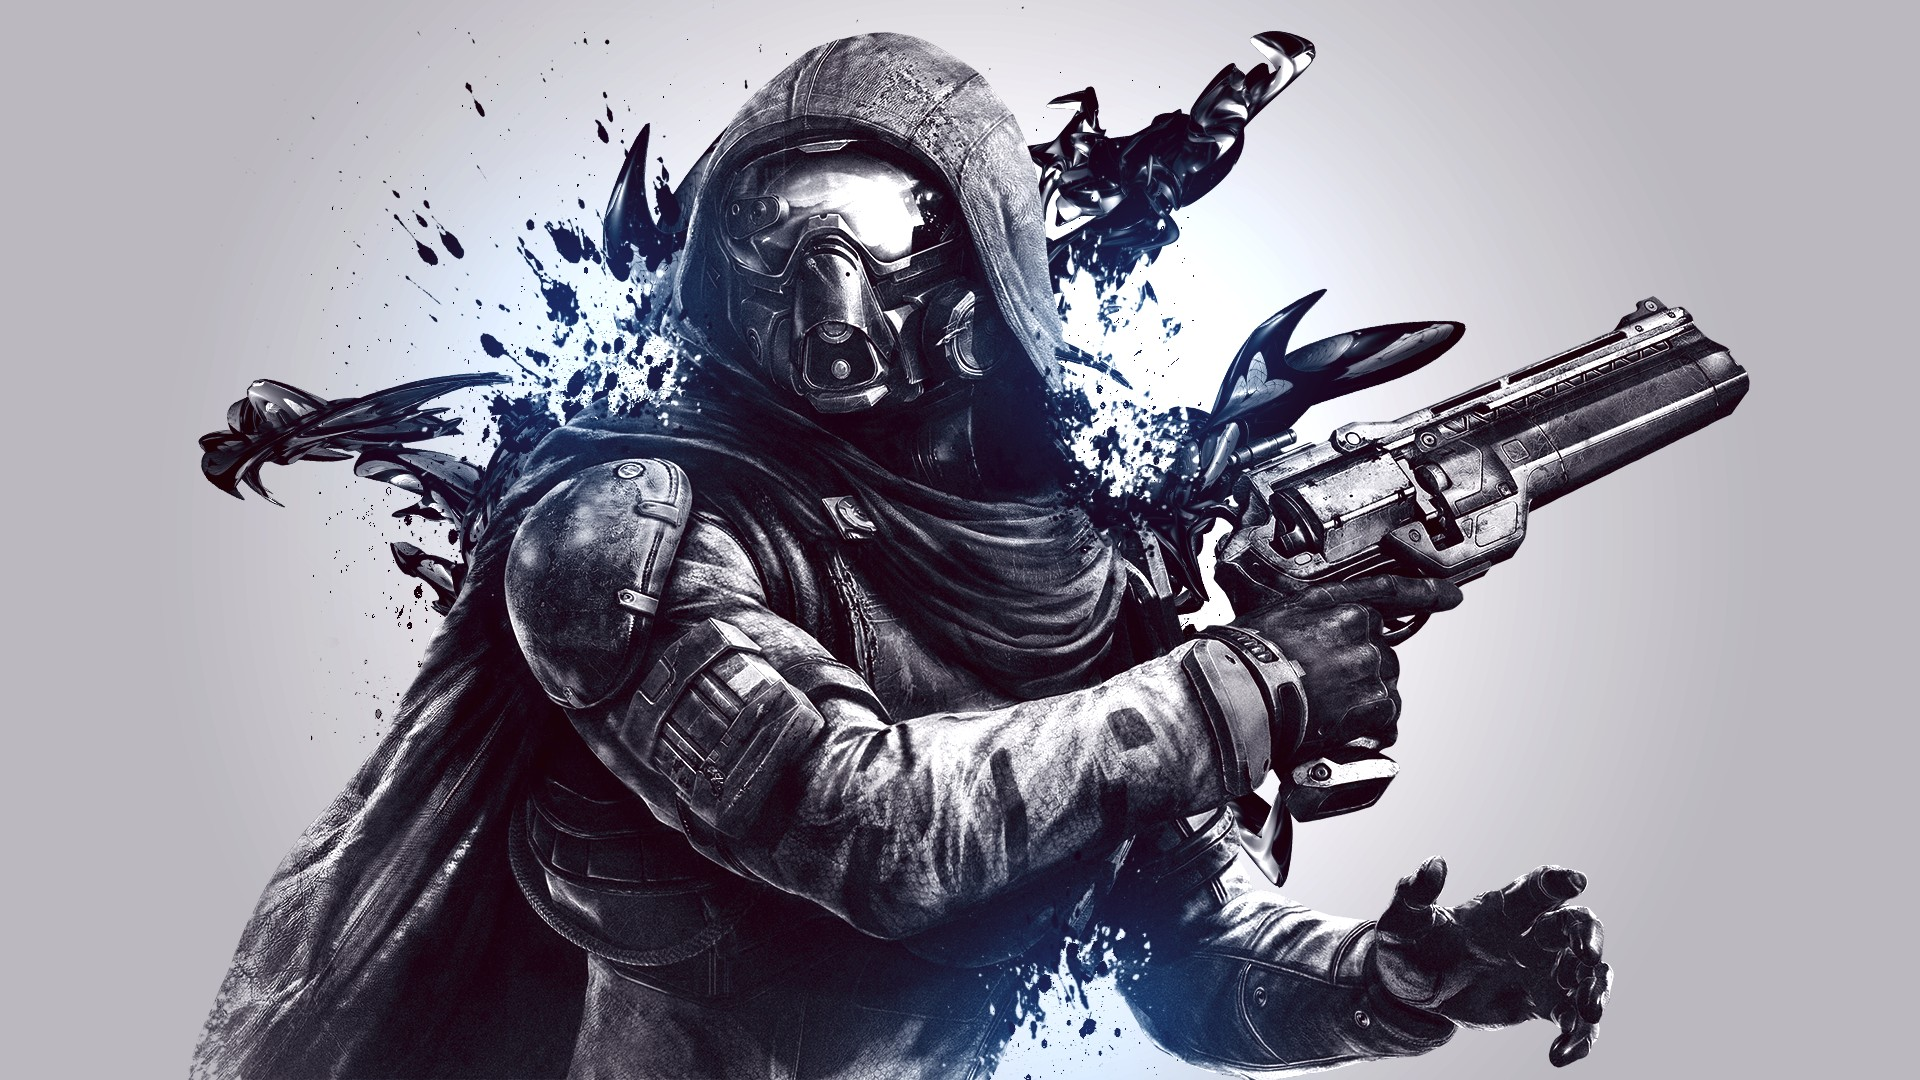 Destiny Hunter Wallpaper 1 Download Free Wallpapers For Desktop